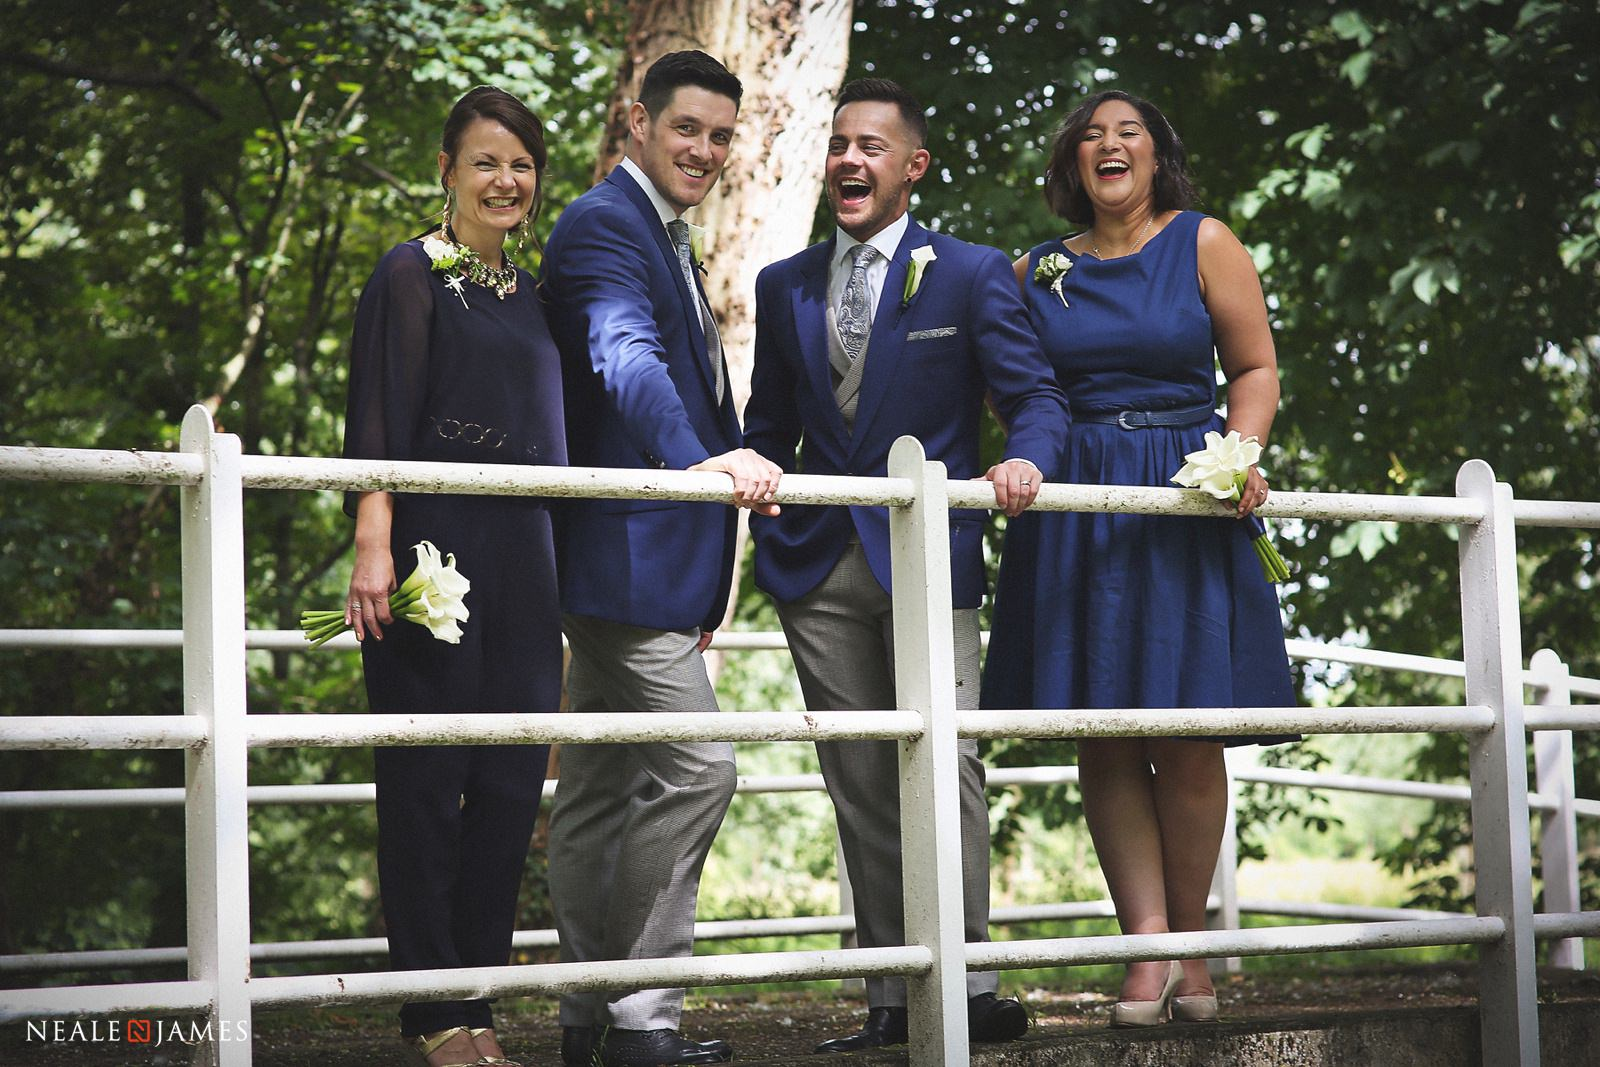 The bridal party stand together on a bridge in the gardens of Notley Abbey